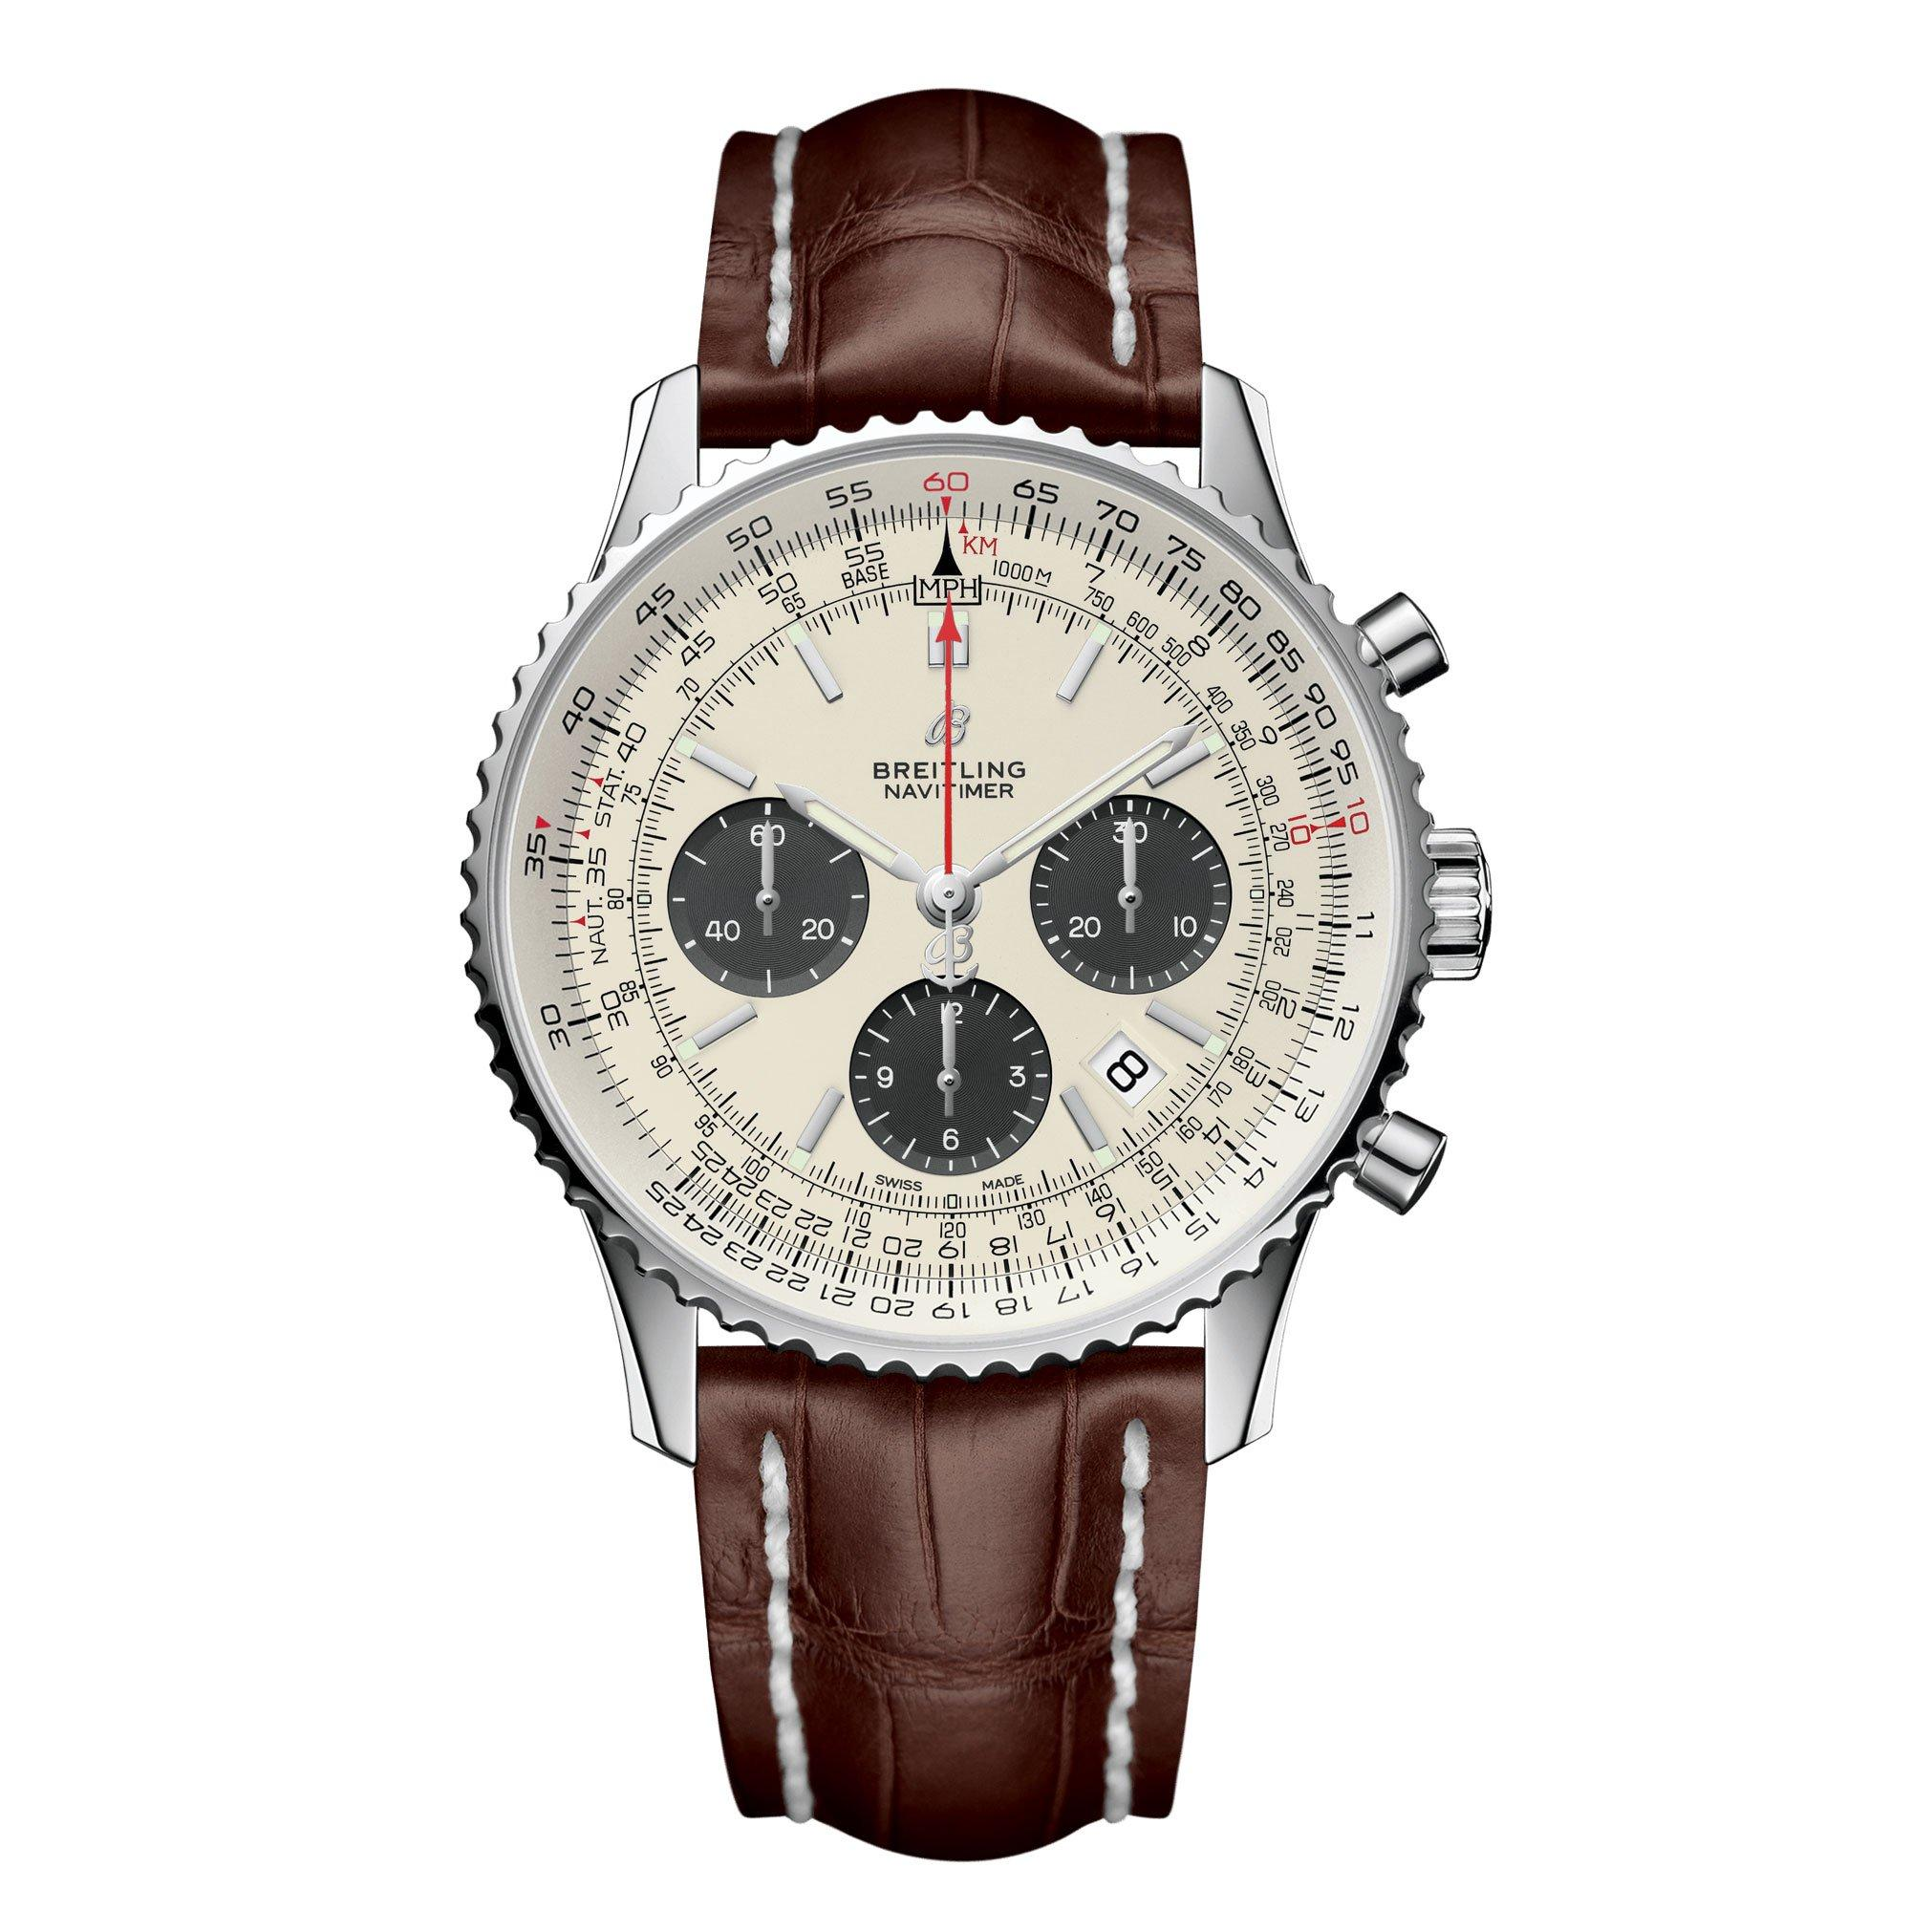 Breitling Navitimer B01 Chronograph 43 Automatic Men's Watch